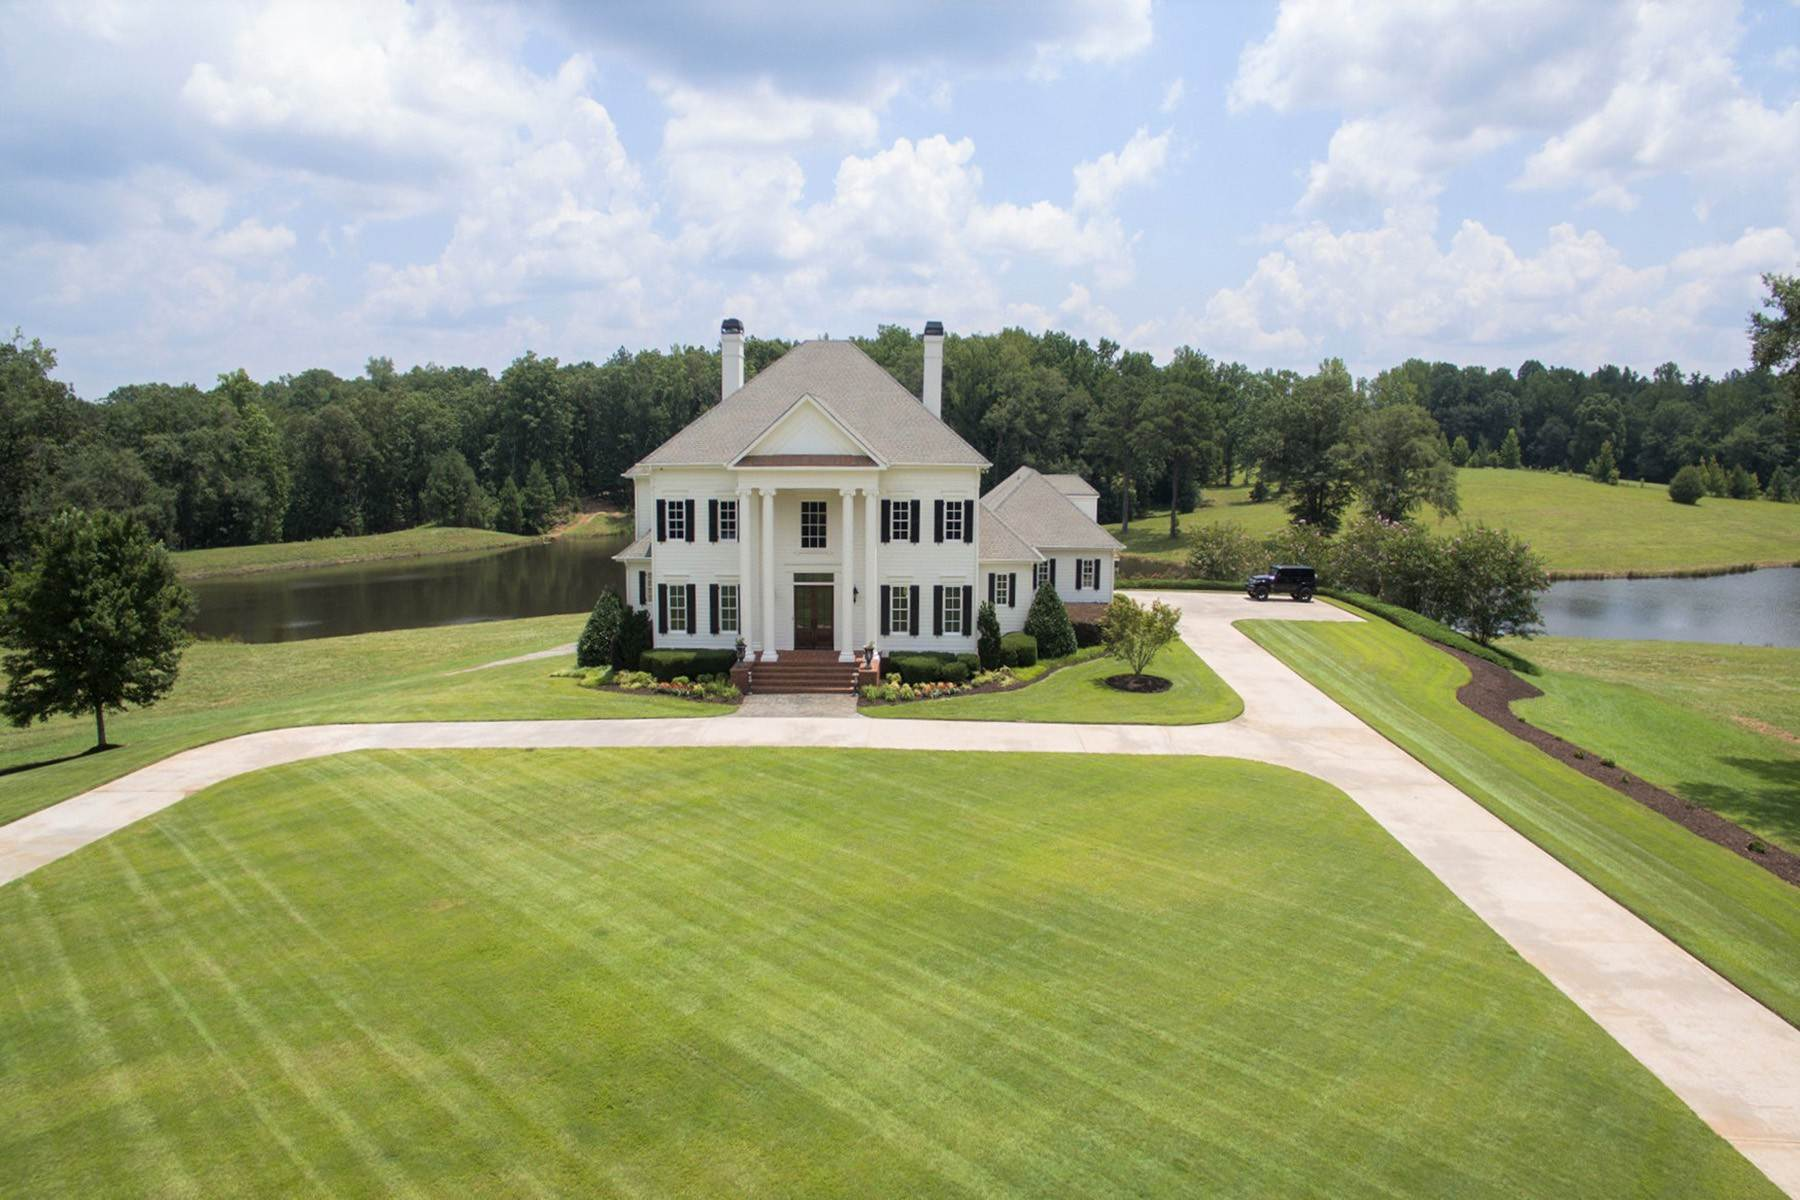 Single Family Homes for Active at Enjoy Luxury Living In A Private, Relaxing, Rural Setting 833 Hines Road Moreland, Georgia 30259 United States